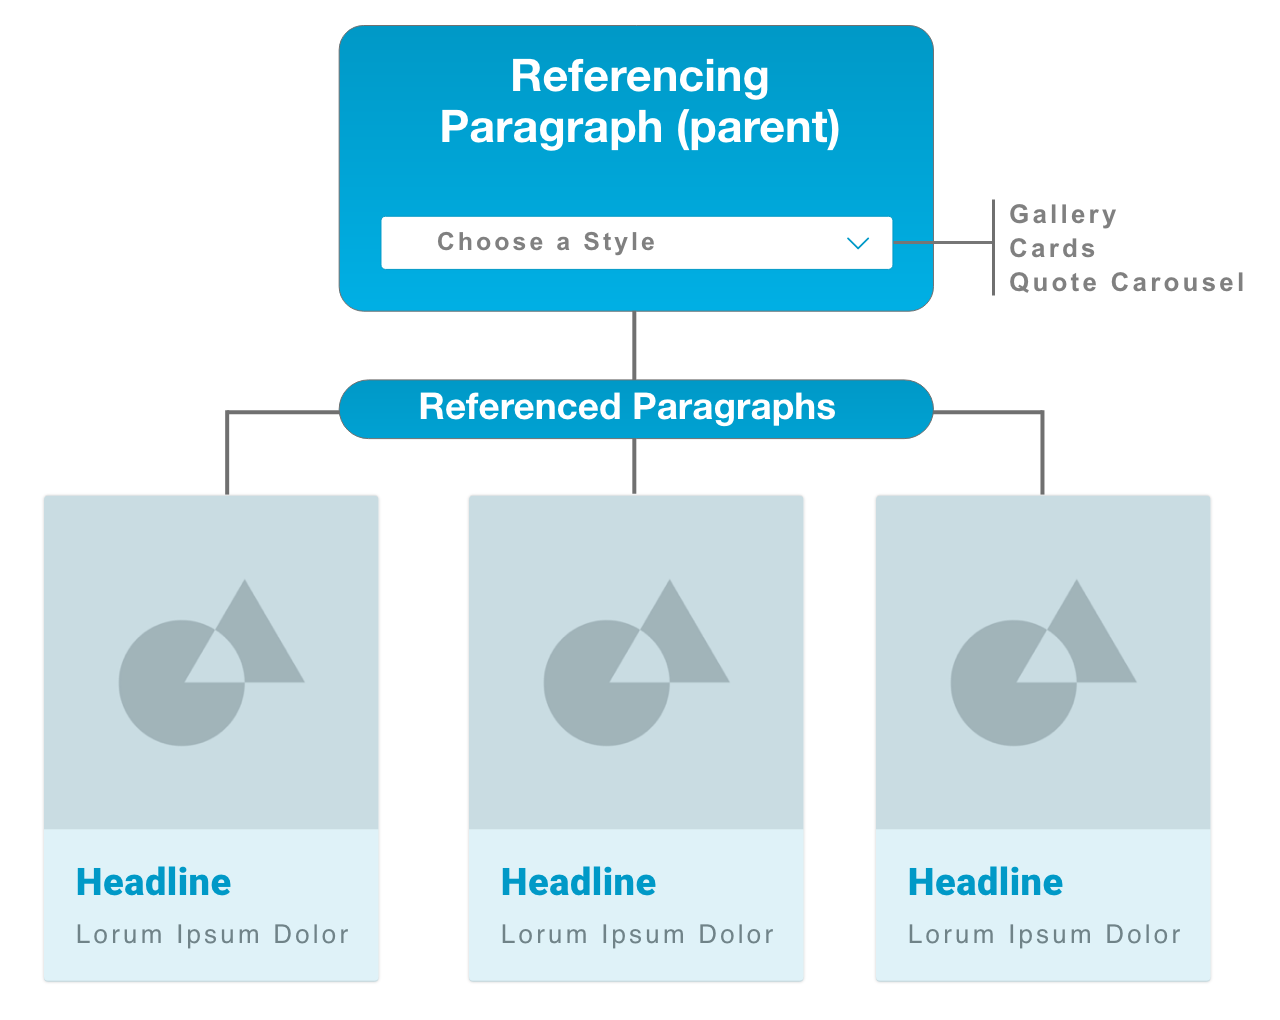 Drupal 8 Architecture: How to Get a Value from a Paragraph's